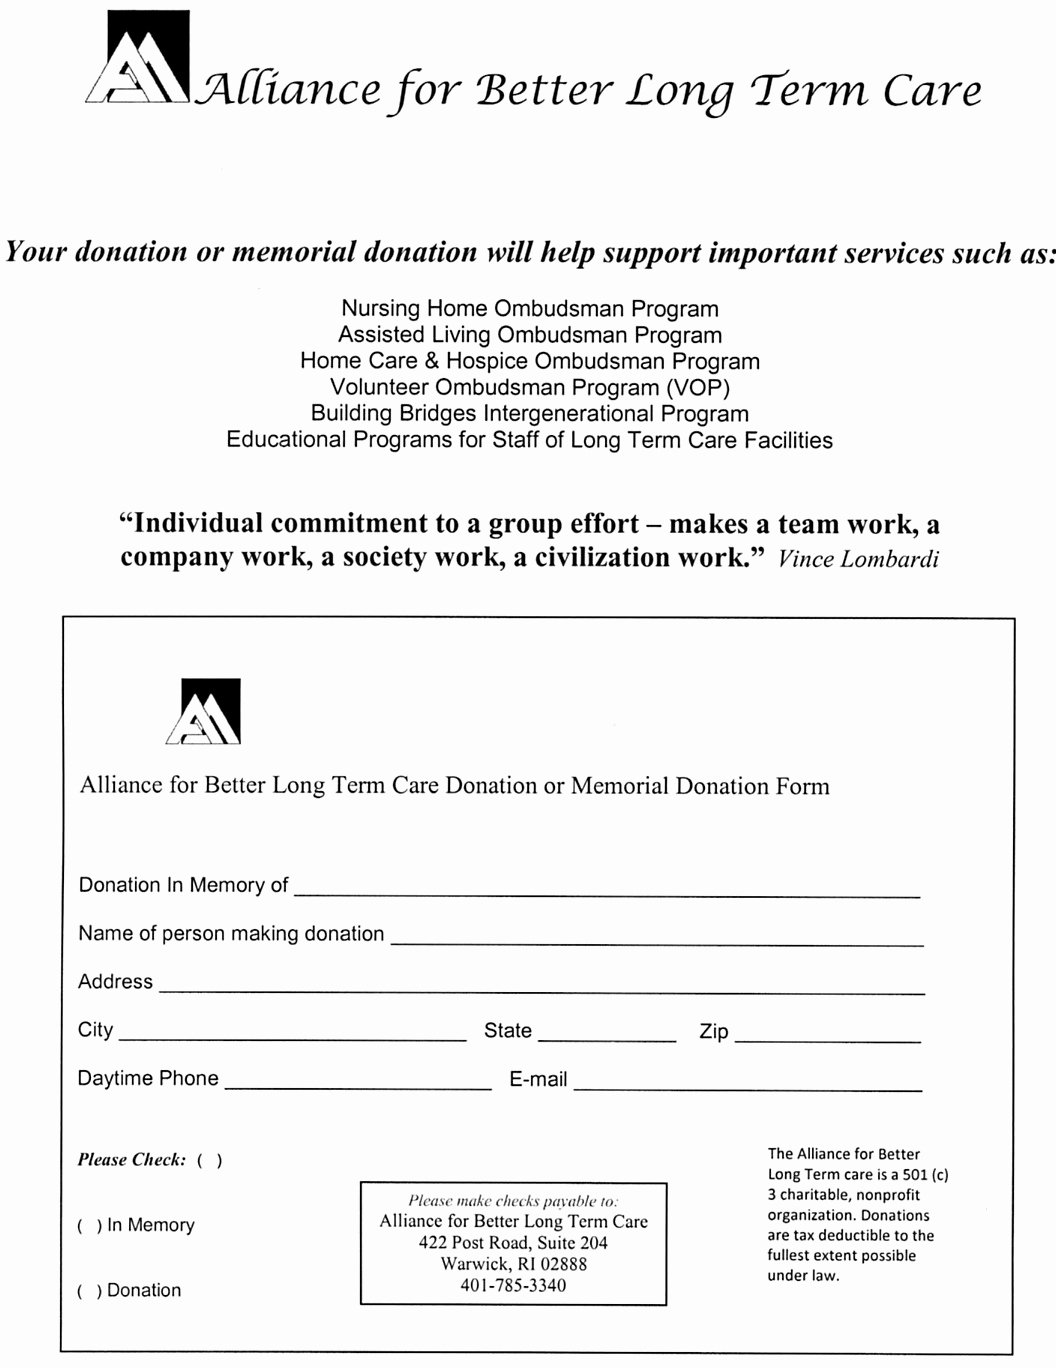 Donation for Funeral Wording Sample Elegant Alliance for Better Long Term Care Donation In Memory